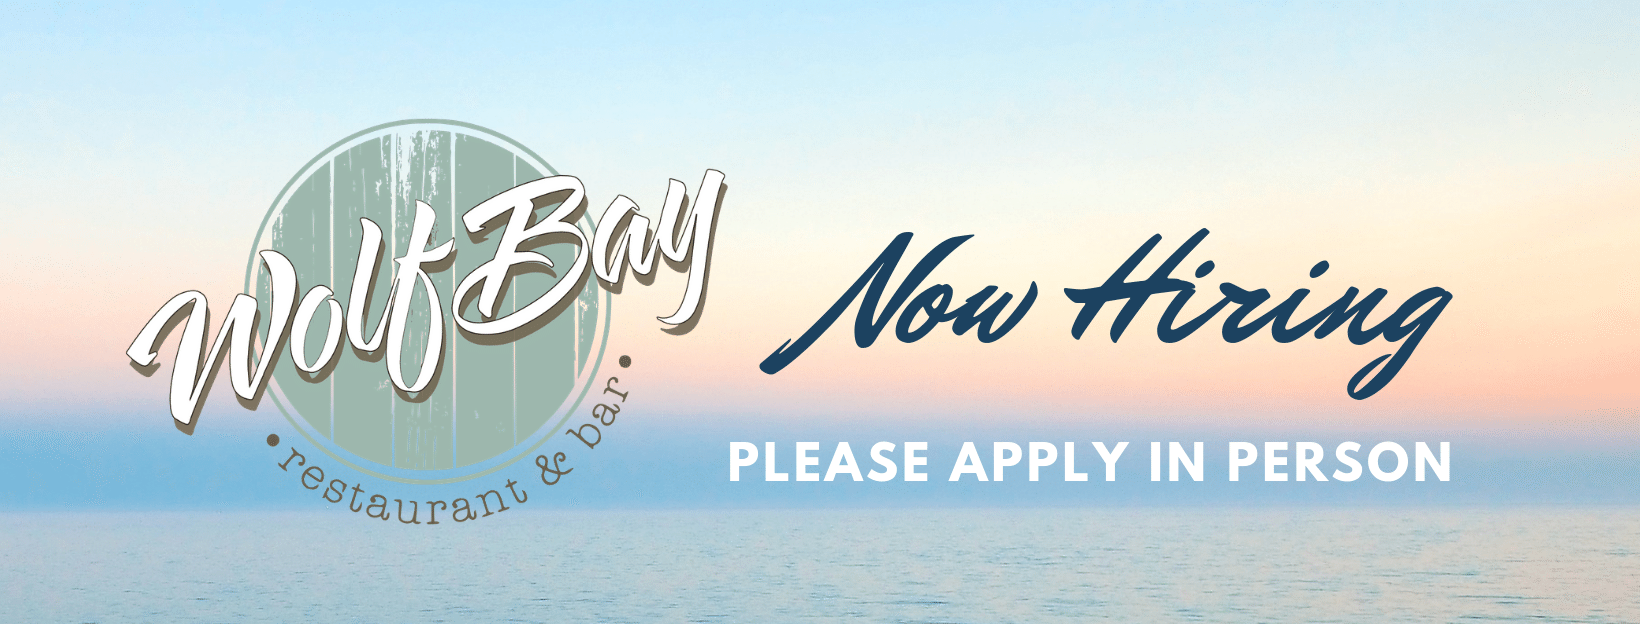 Hiring at ALL Wolf Bay Locations